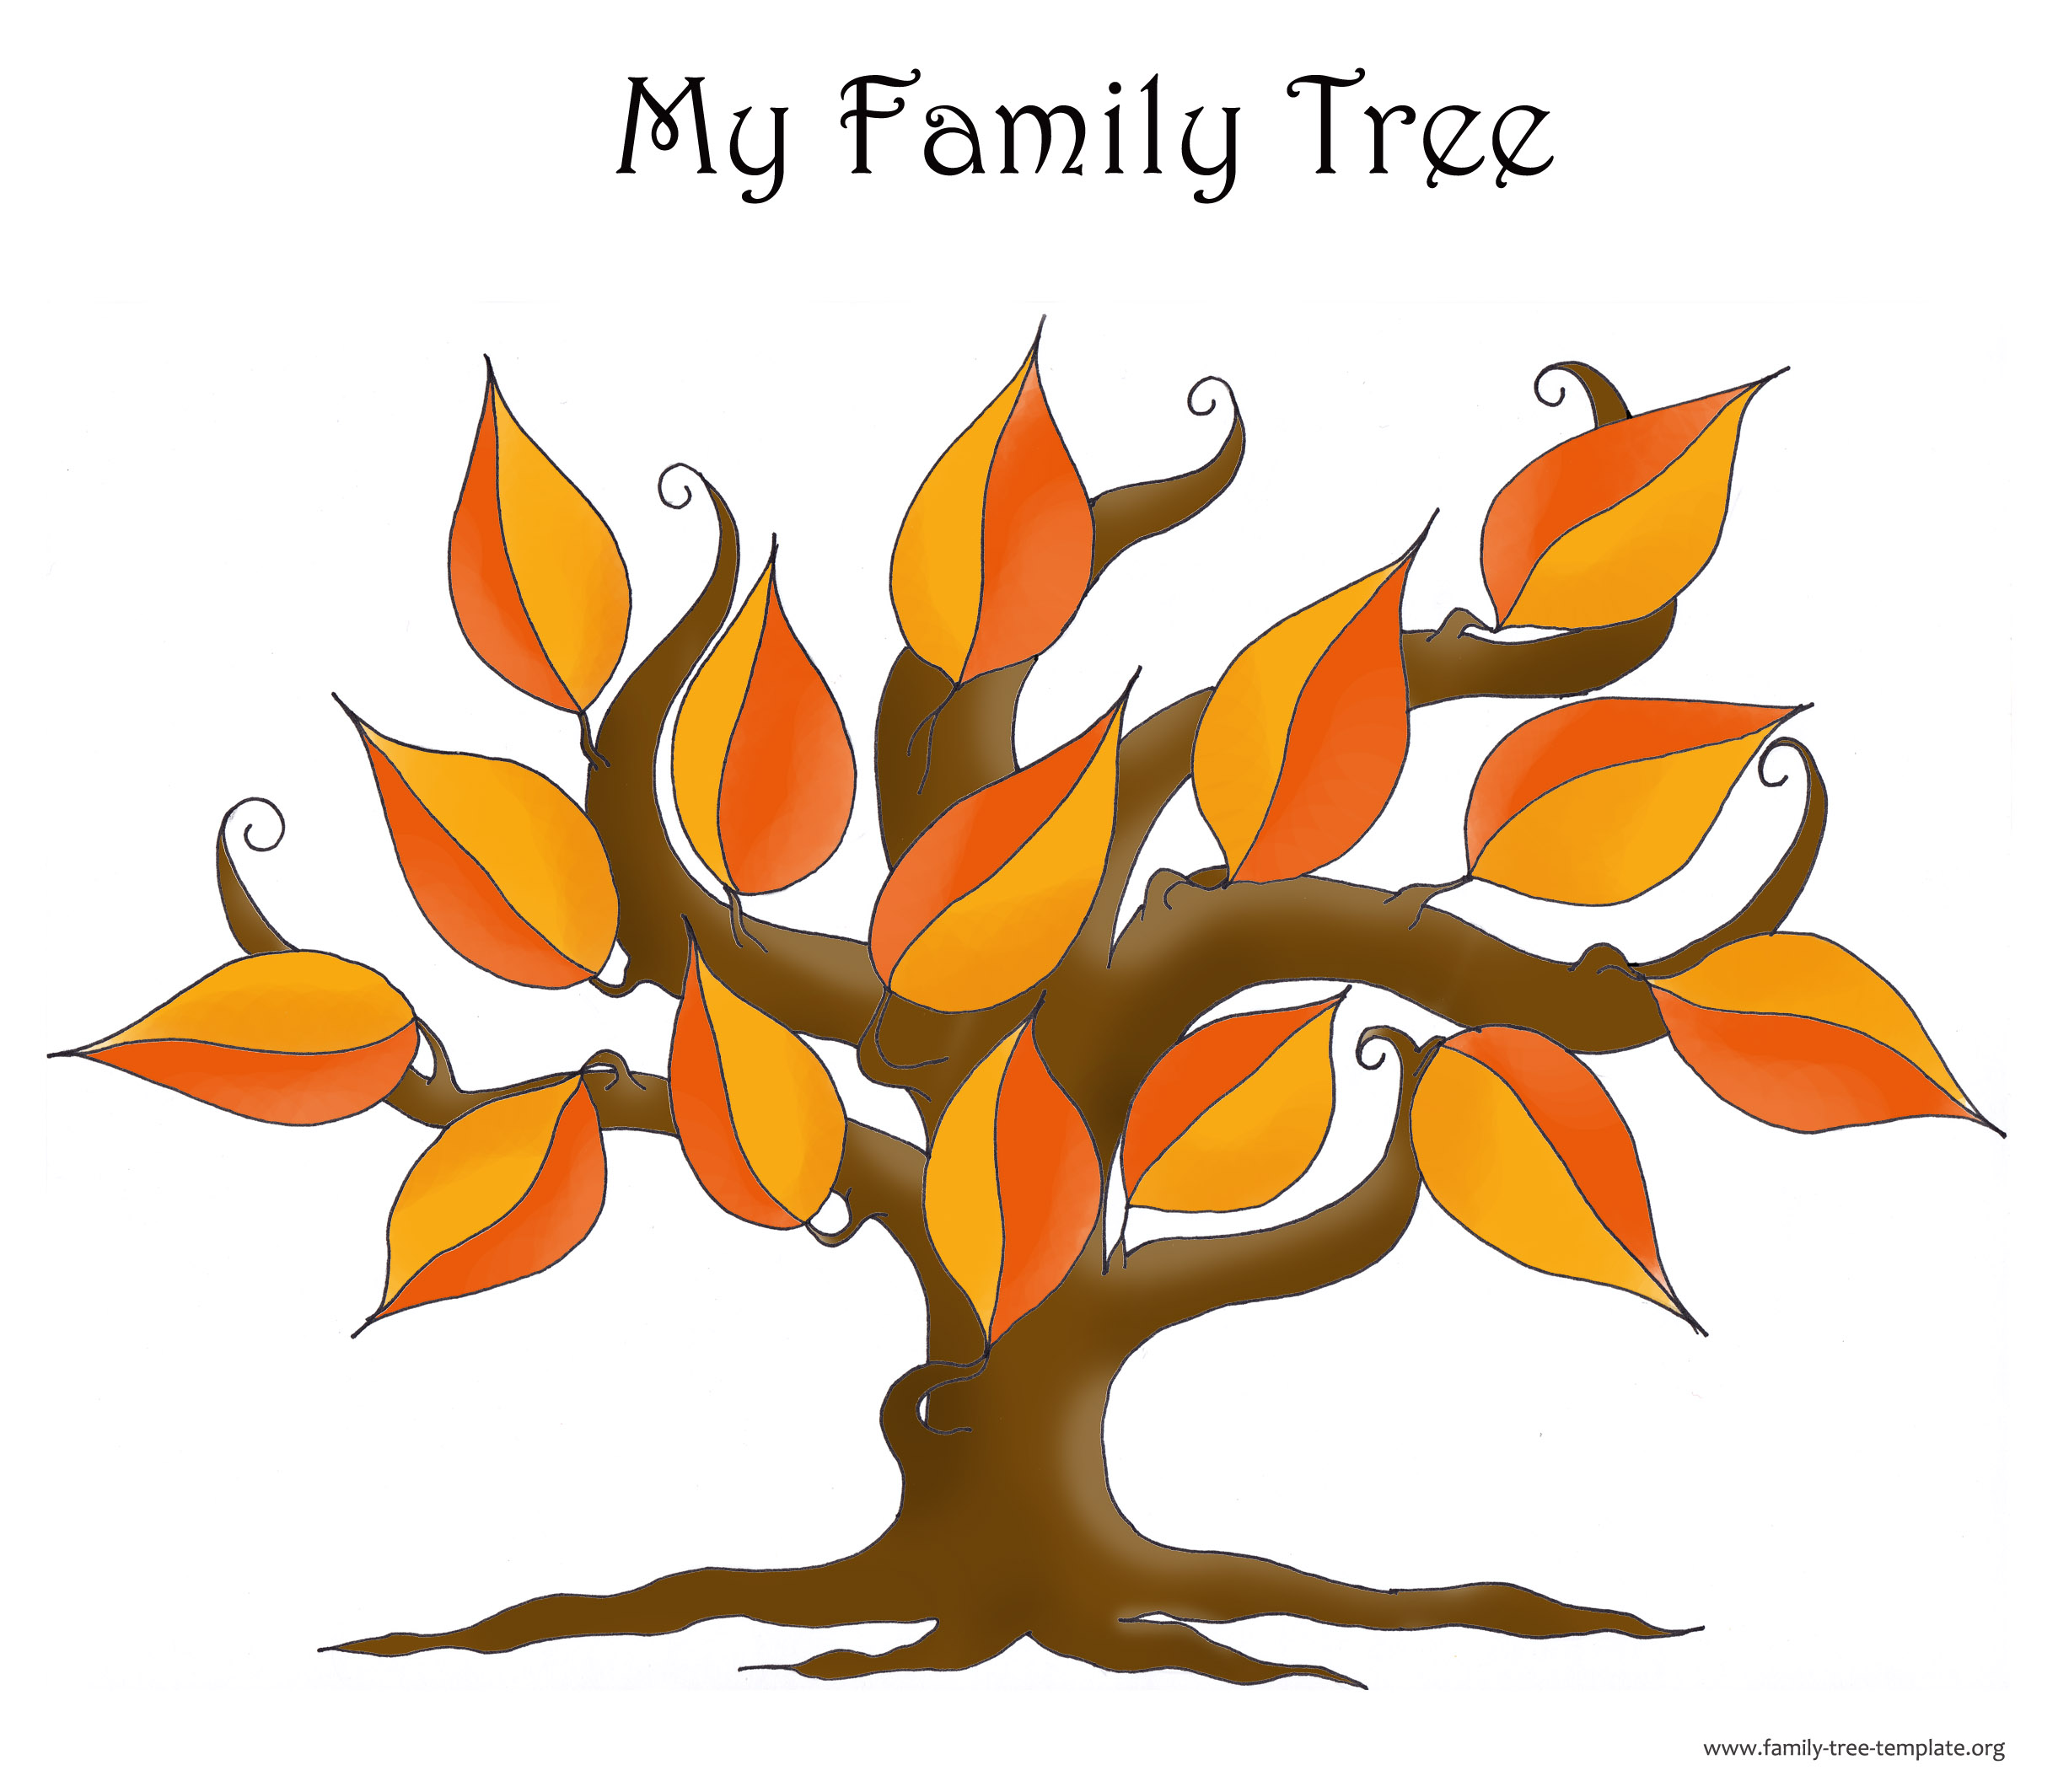 Another version of family tree chart in red and orange autumn colors